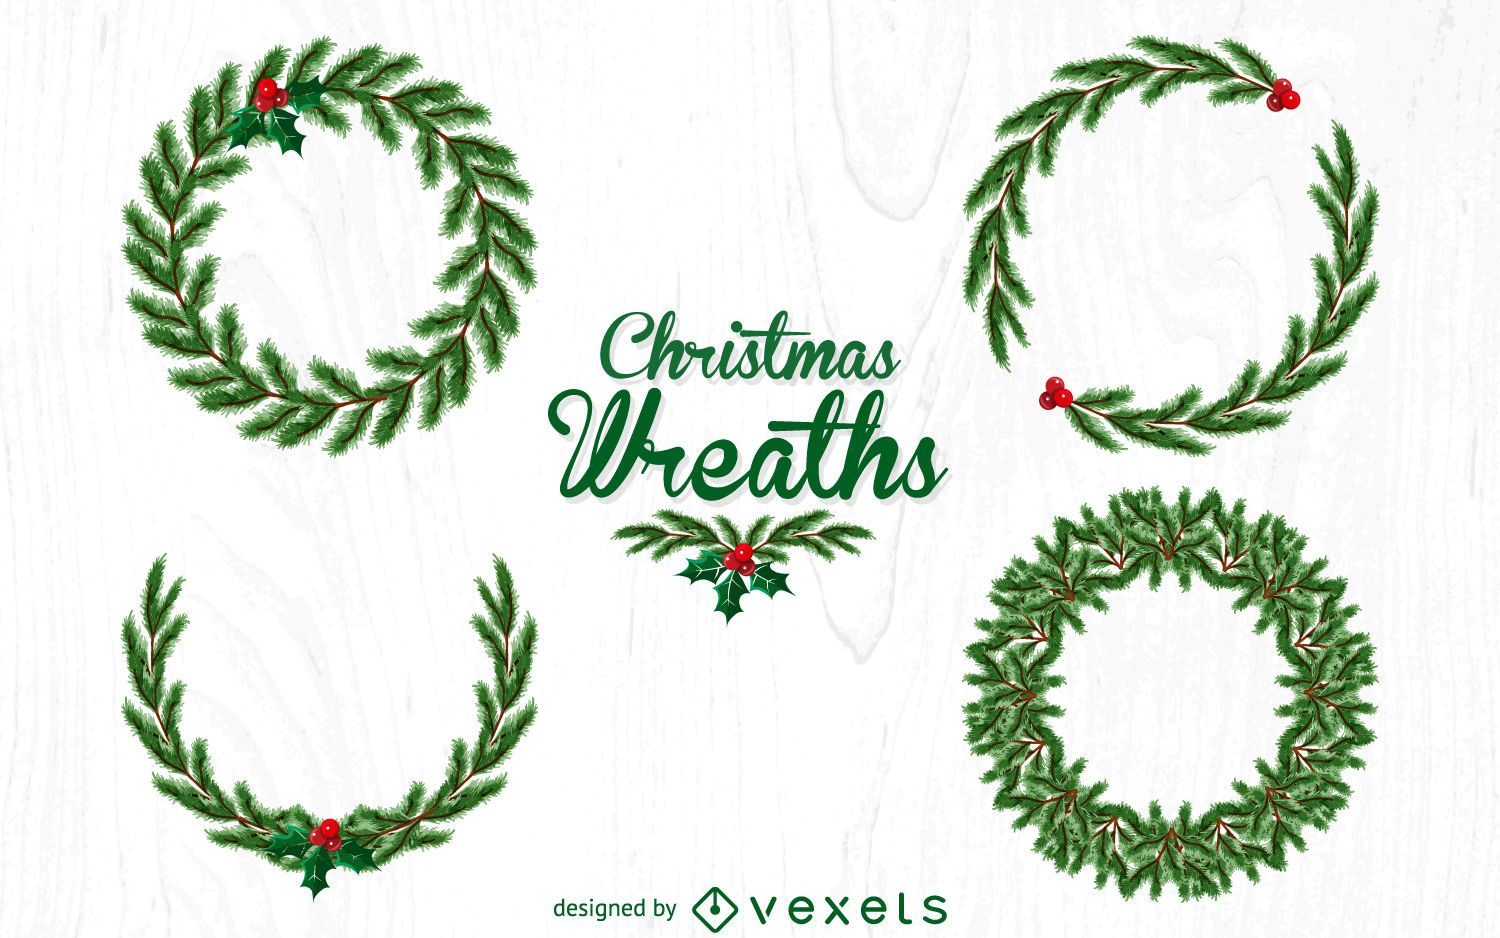 Christmas wreath illustration set - Vector download